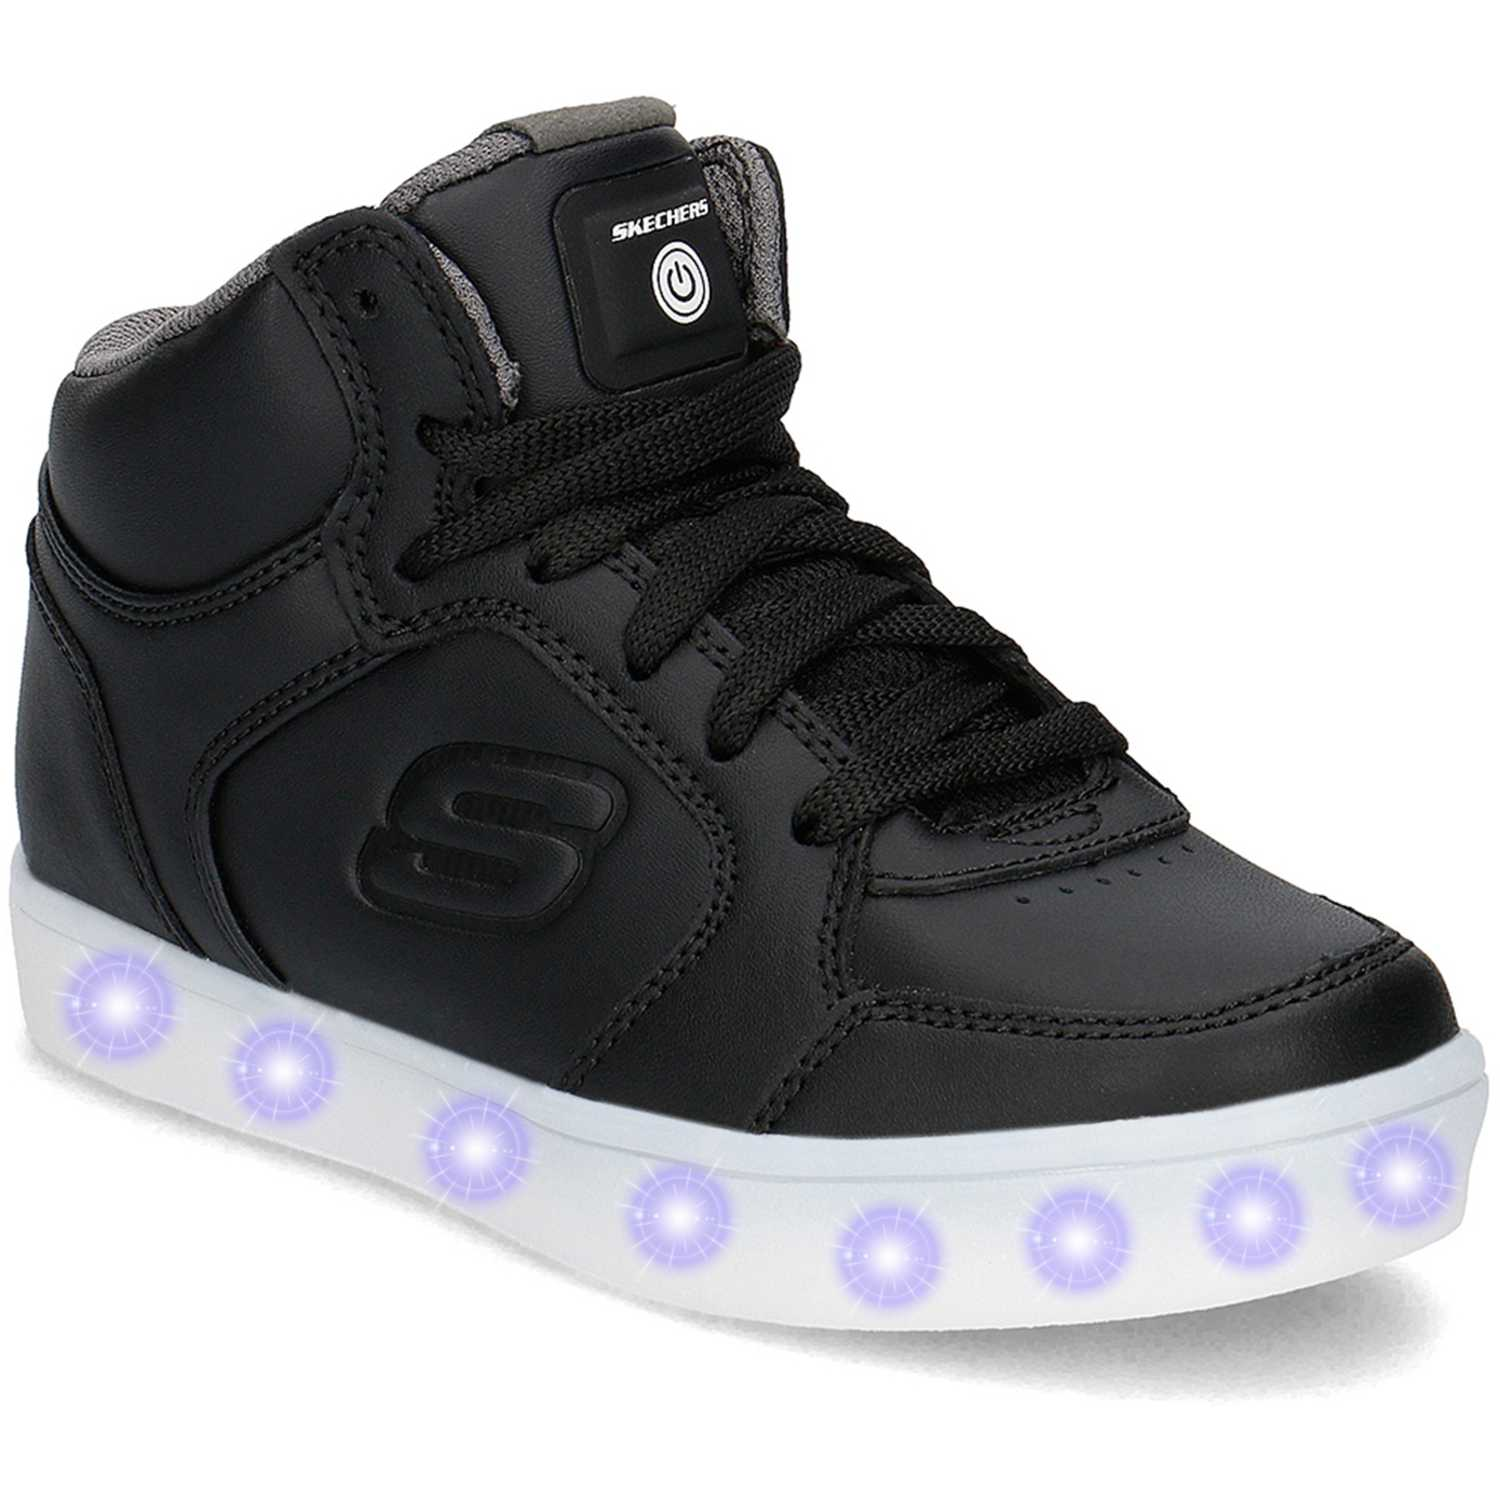 De Lights Skechers Negro Cuña Mujer Energy Con Luces 90600l POkXZuTi